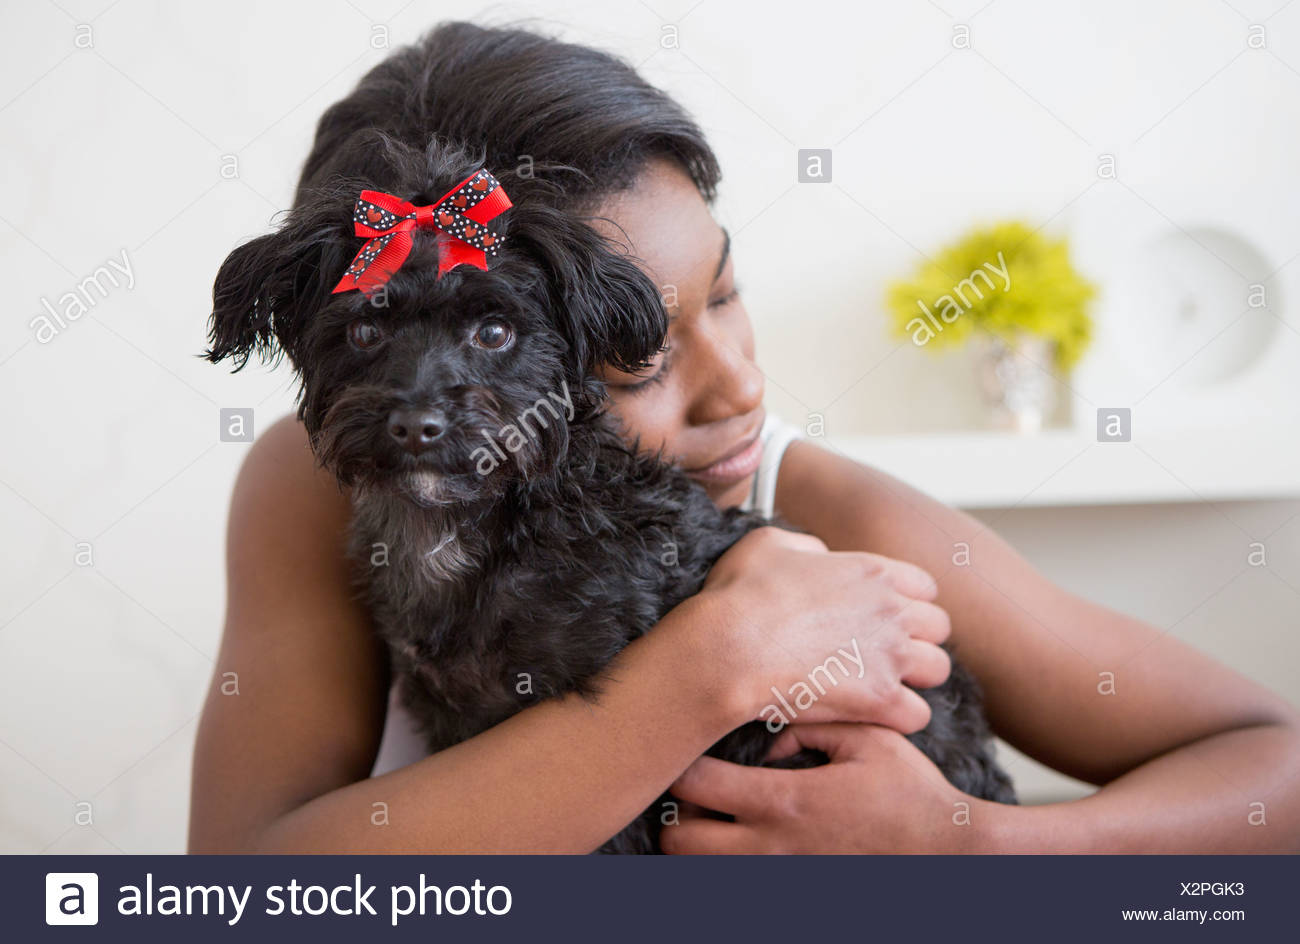 A young girl hugging her small black pet dog. - Stock Image